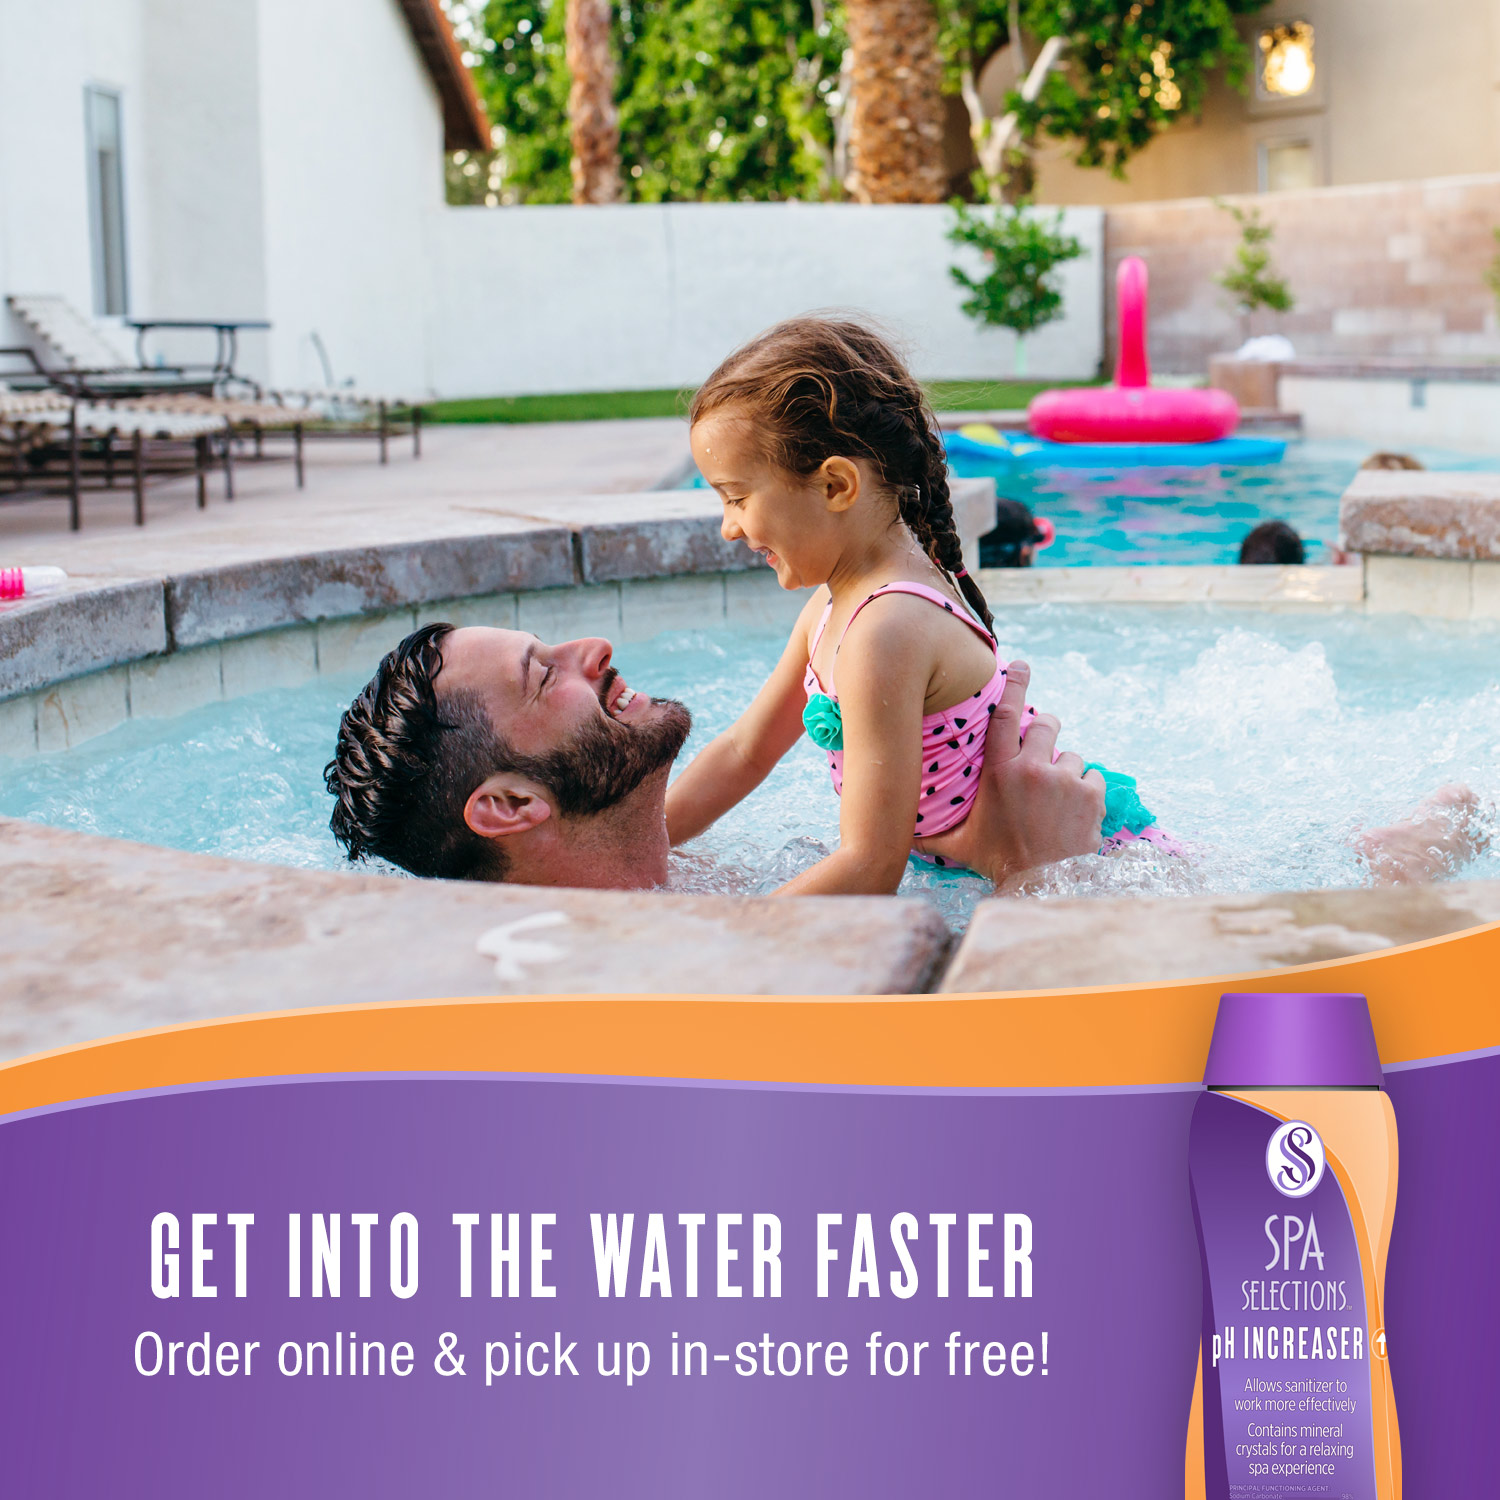 Father and daughter enjoying outdoor hot tub. Get into the water faster with Spa Selections pH Increaser, order online and pick up in-store for free!